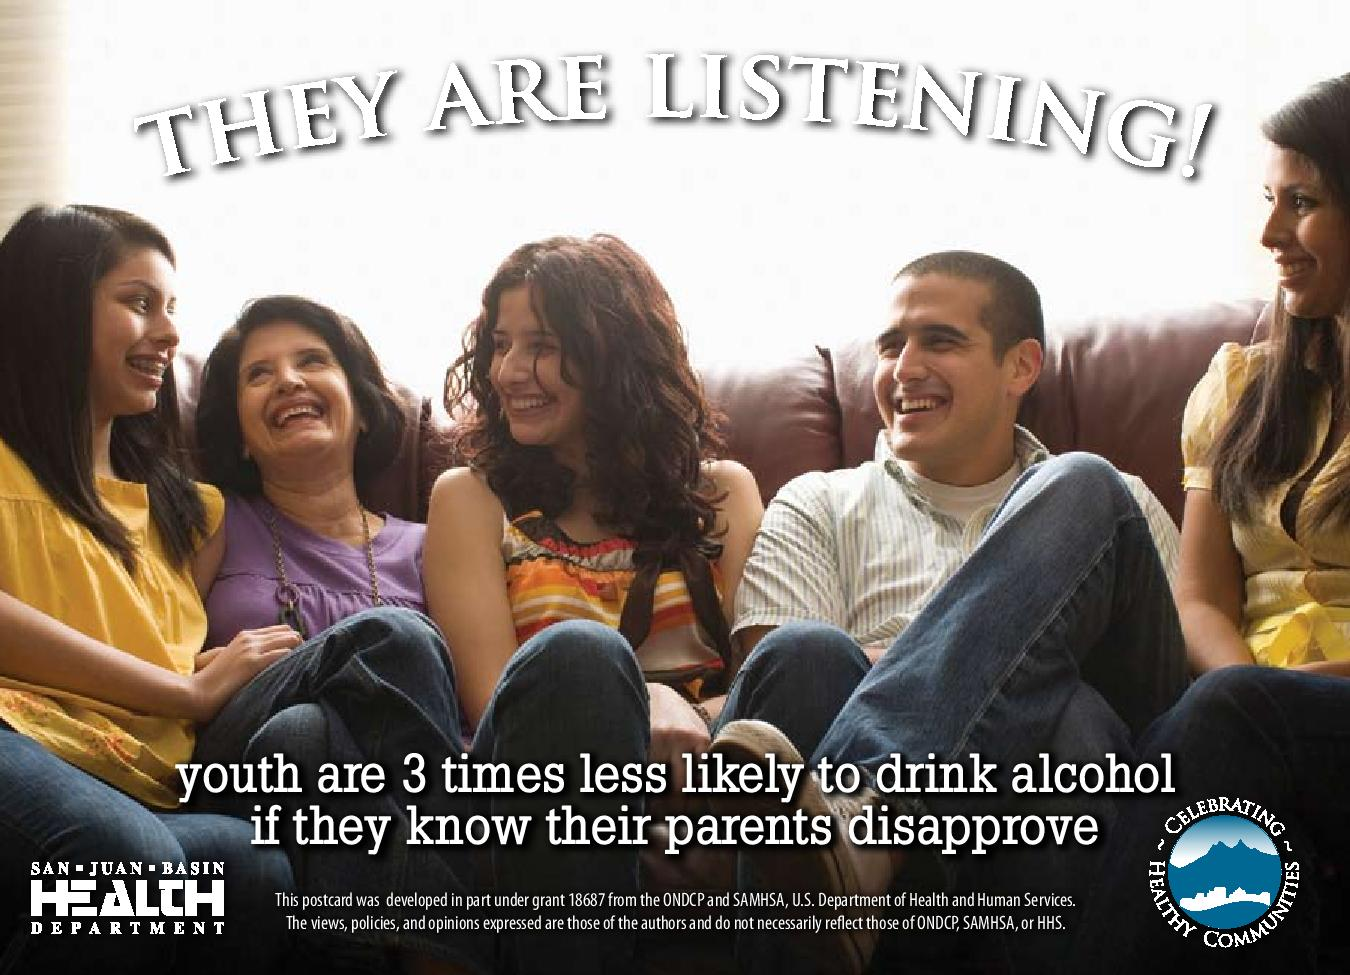 They_are_listening_postcard_-_alcohol_2012__Couch__-page-001.jpg